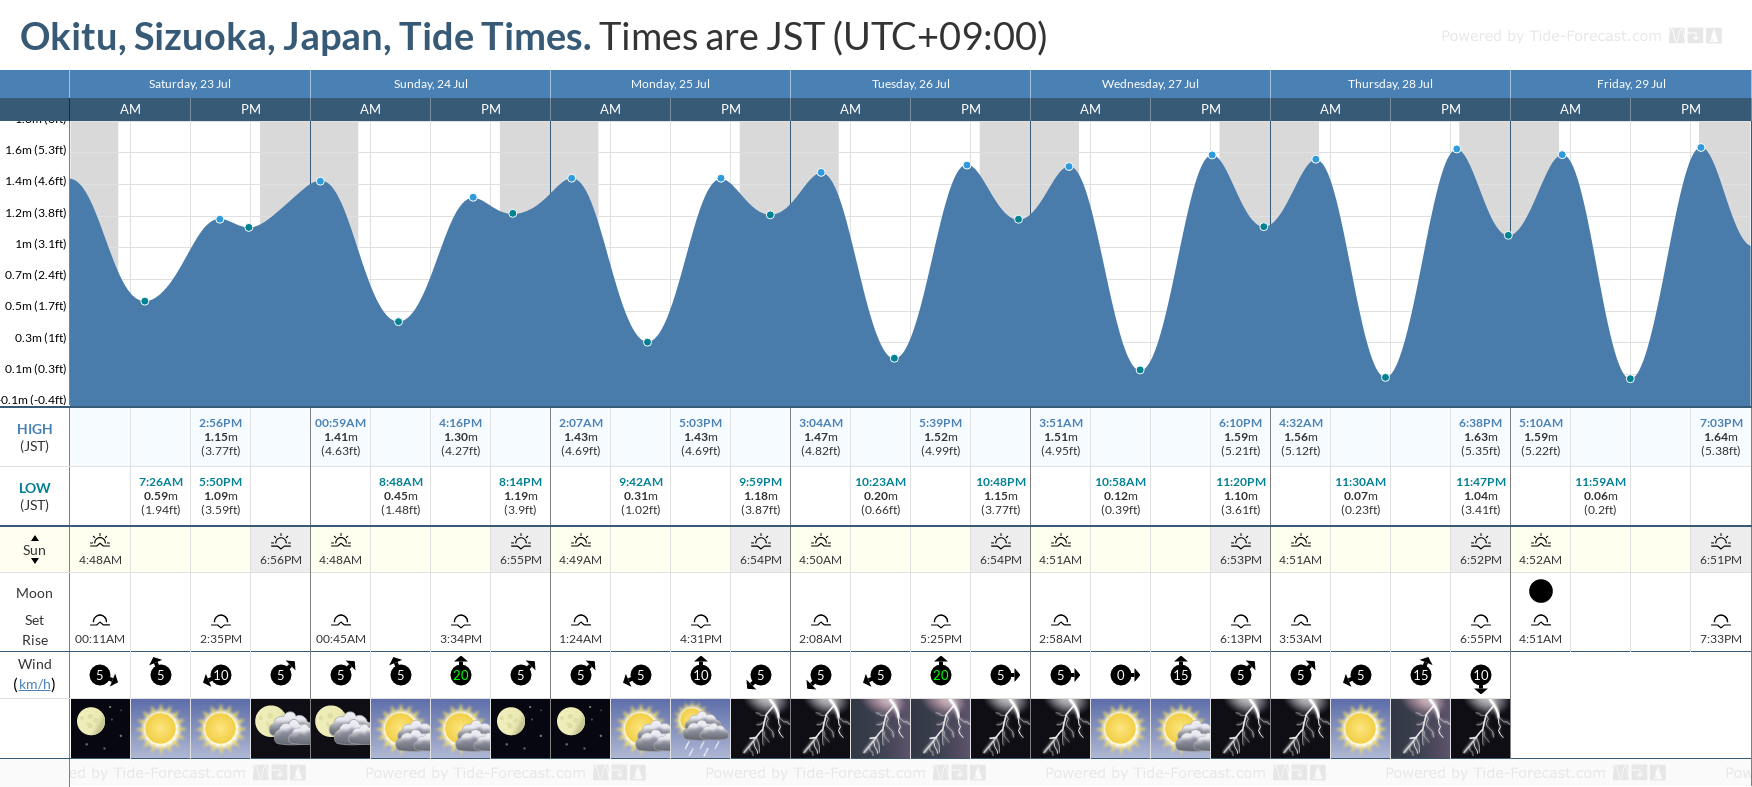 Okitu, Sizuoka, Japan Tide Chart including high and low tide tide times for the next 7 days